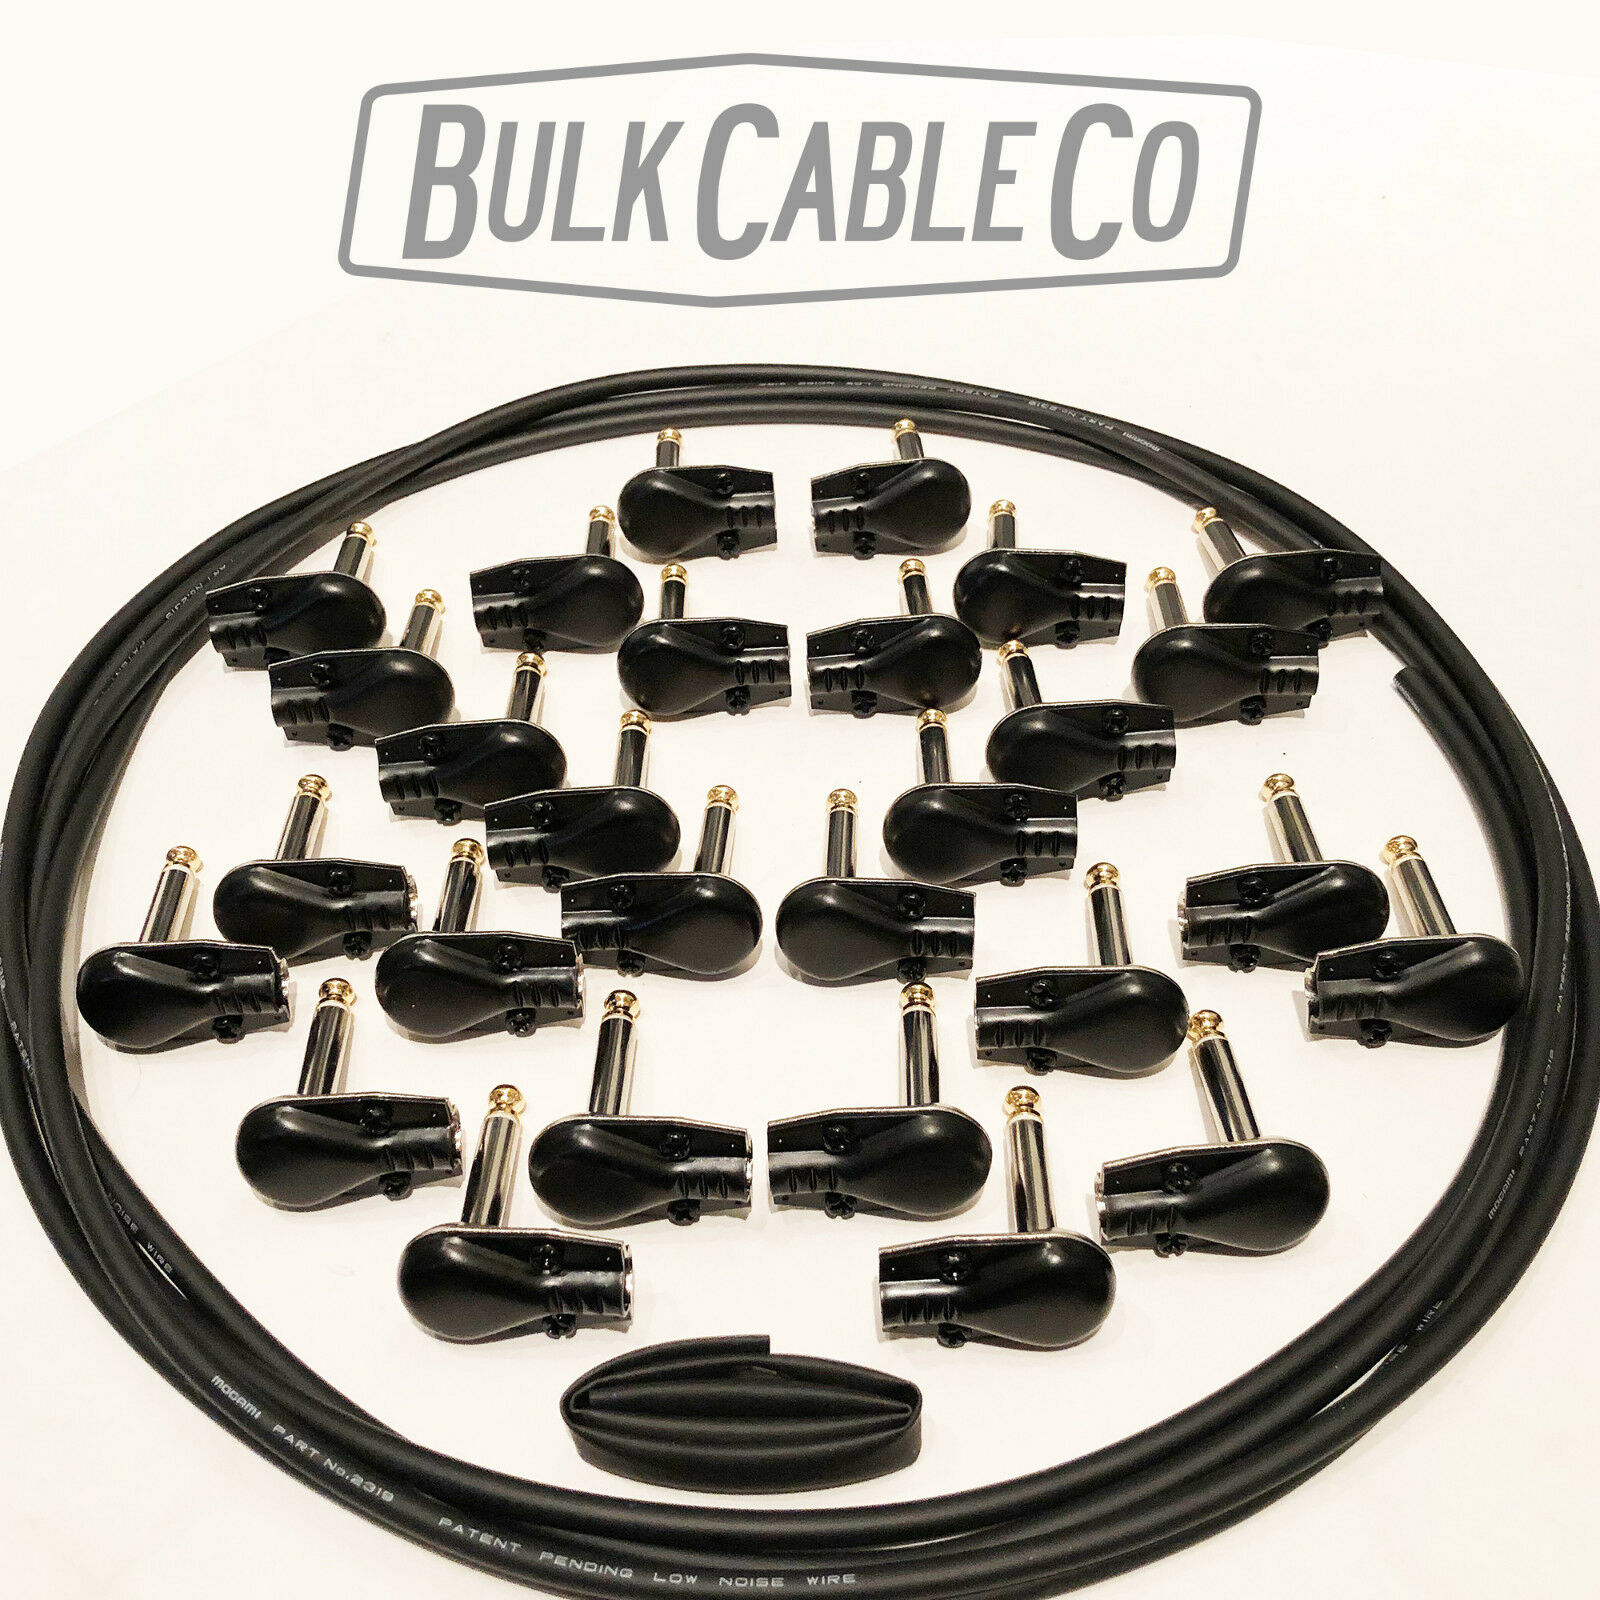 PEDAL BOARD PATCH CABLE KIT - 14 CABLES - 21' MOGAMI 2319 - 28 BLK PANCAKE PLUGS